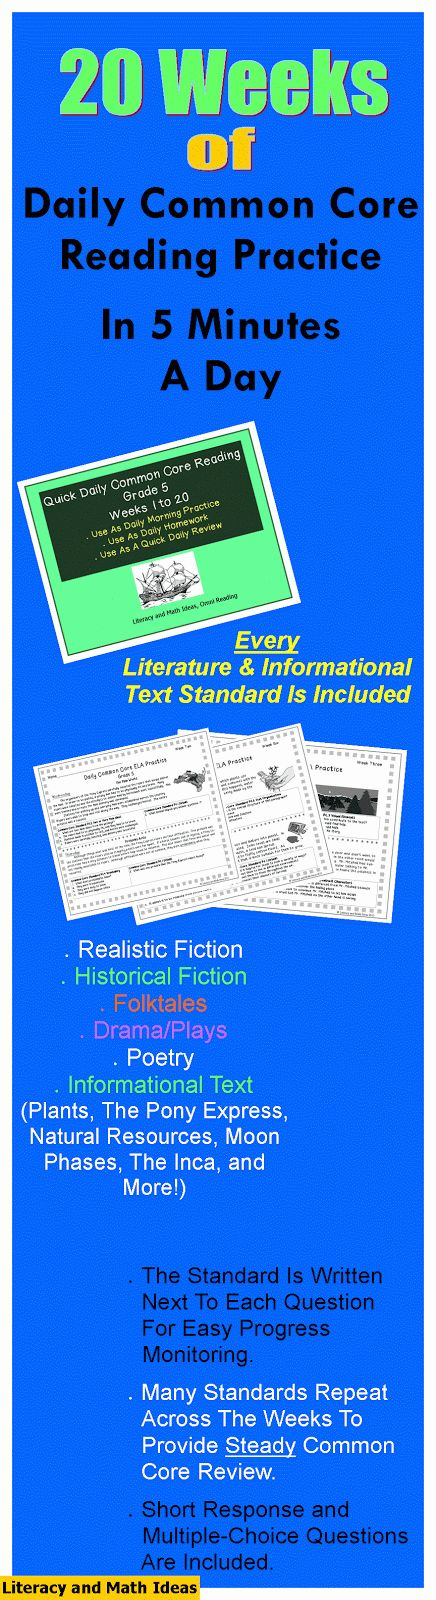 20 Weeks of Common Core reading practice in one bundle!  Realistic fiction, historical fiction, drama/plays, poetry, folktales, and informational text passages are all included.  Every Literature and Informational Text Standard is included. Questions are posed using different levels of Bloom's Taxonomy to promote in-depth and deep understanding of each standard.$